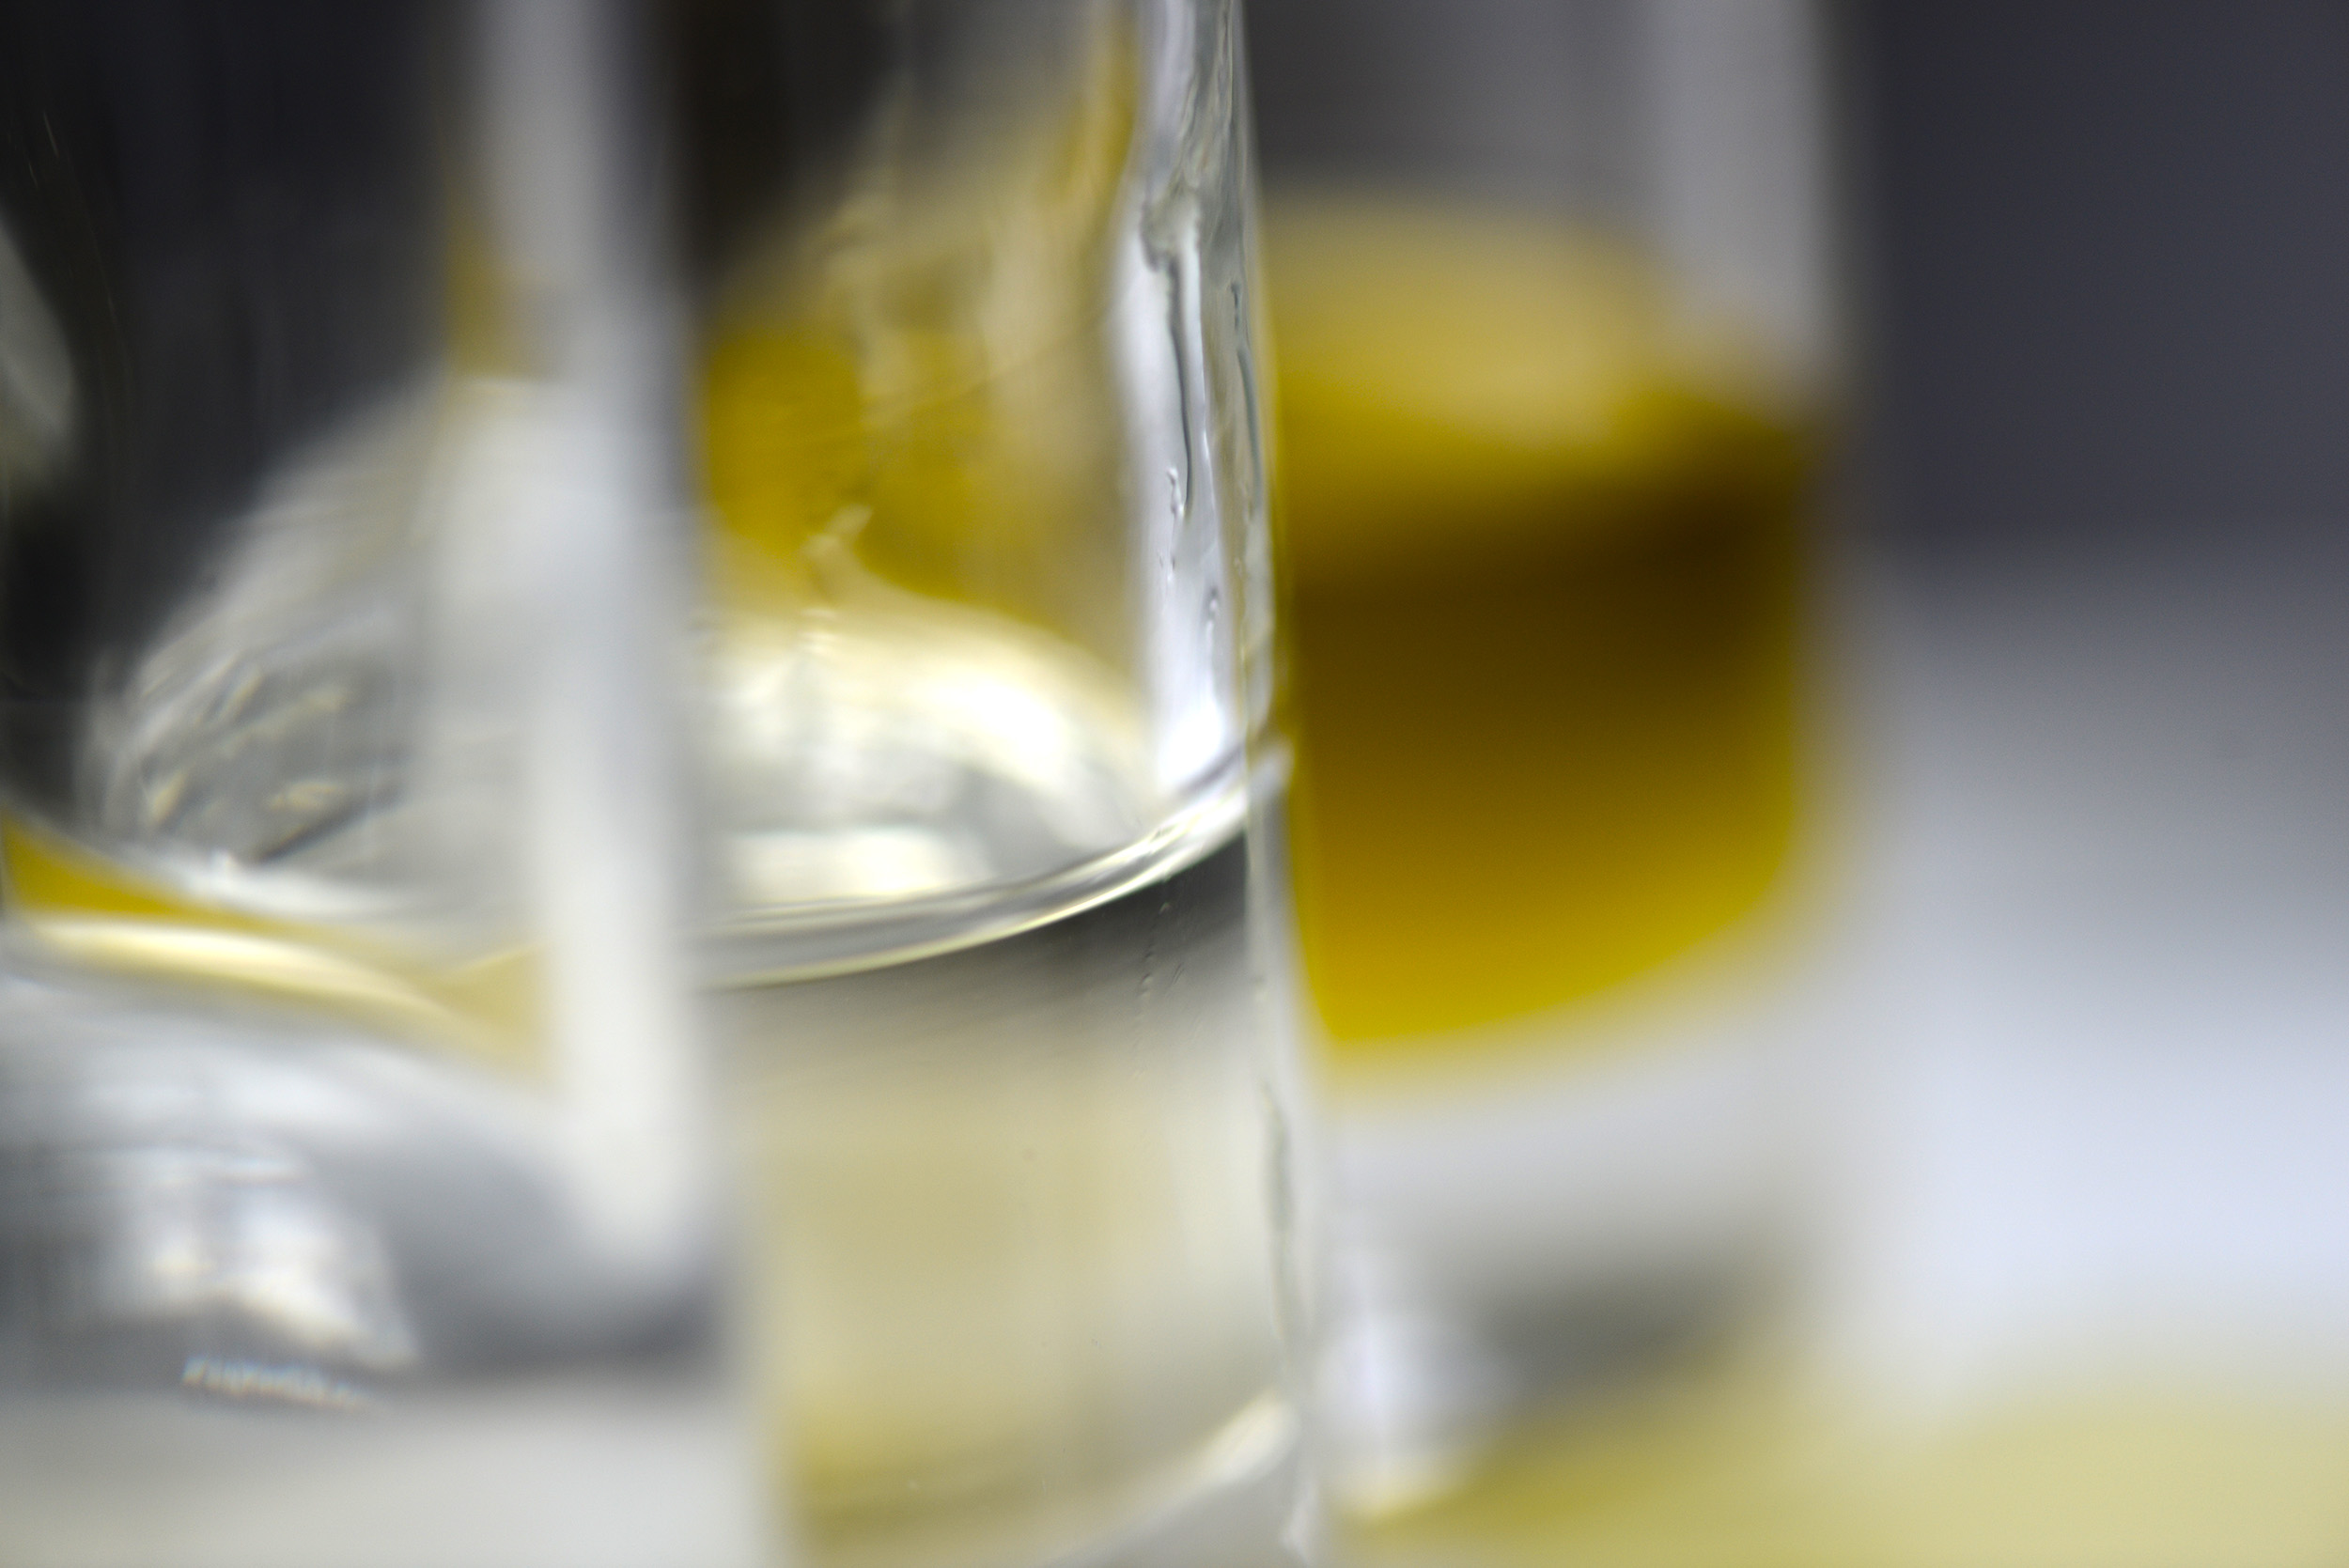 Vegetable Oils of Different Viscocity